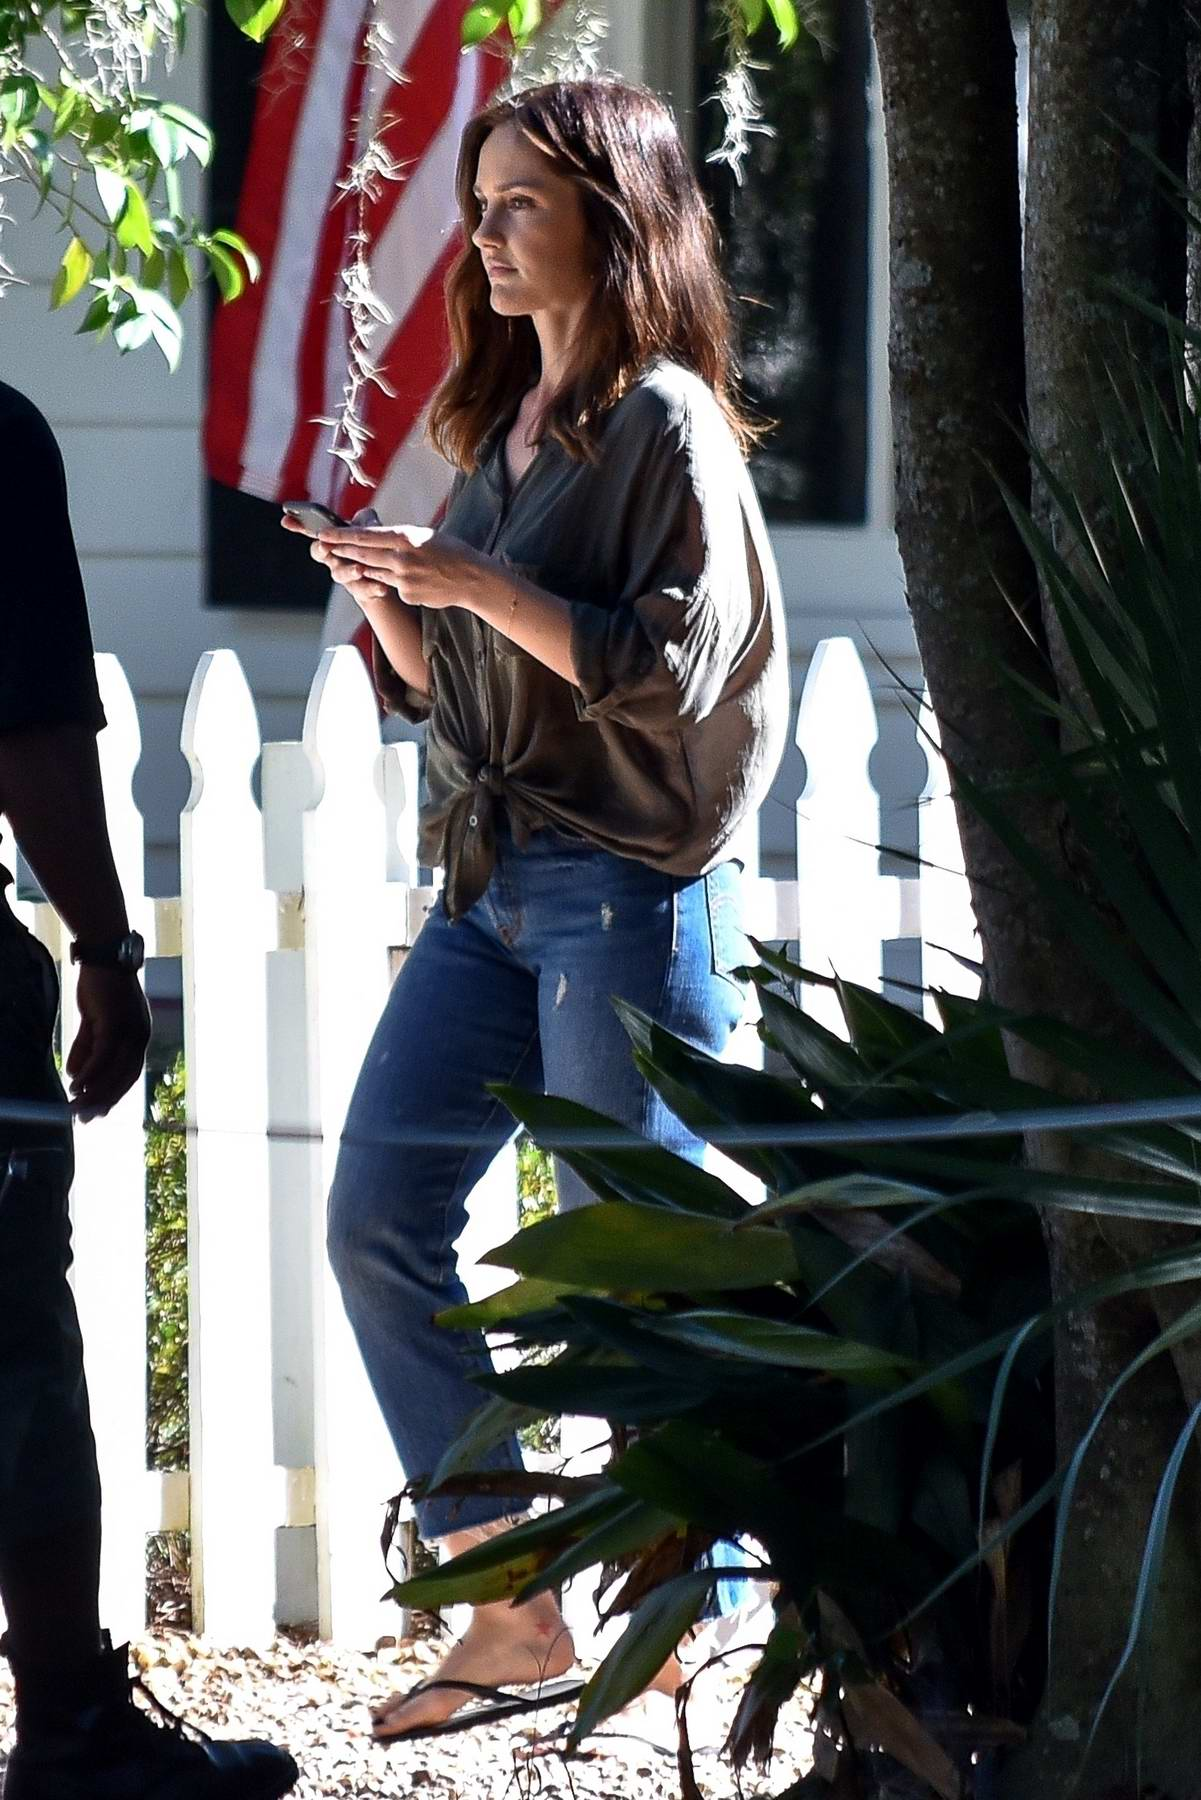 Minka Kelly filming her new Hallmark movie the beach house in Savannah, Georgia